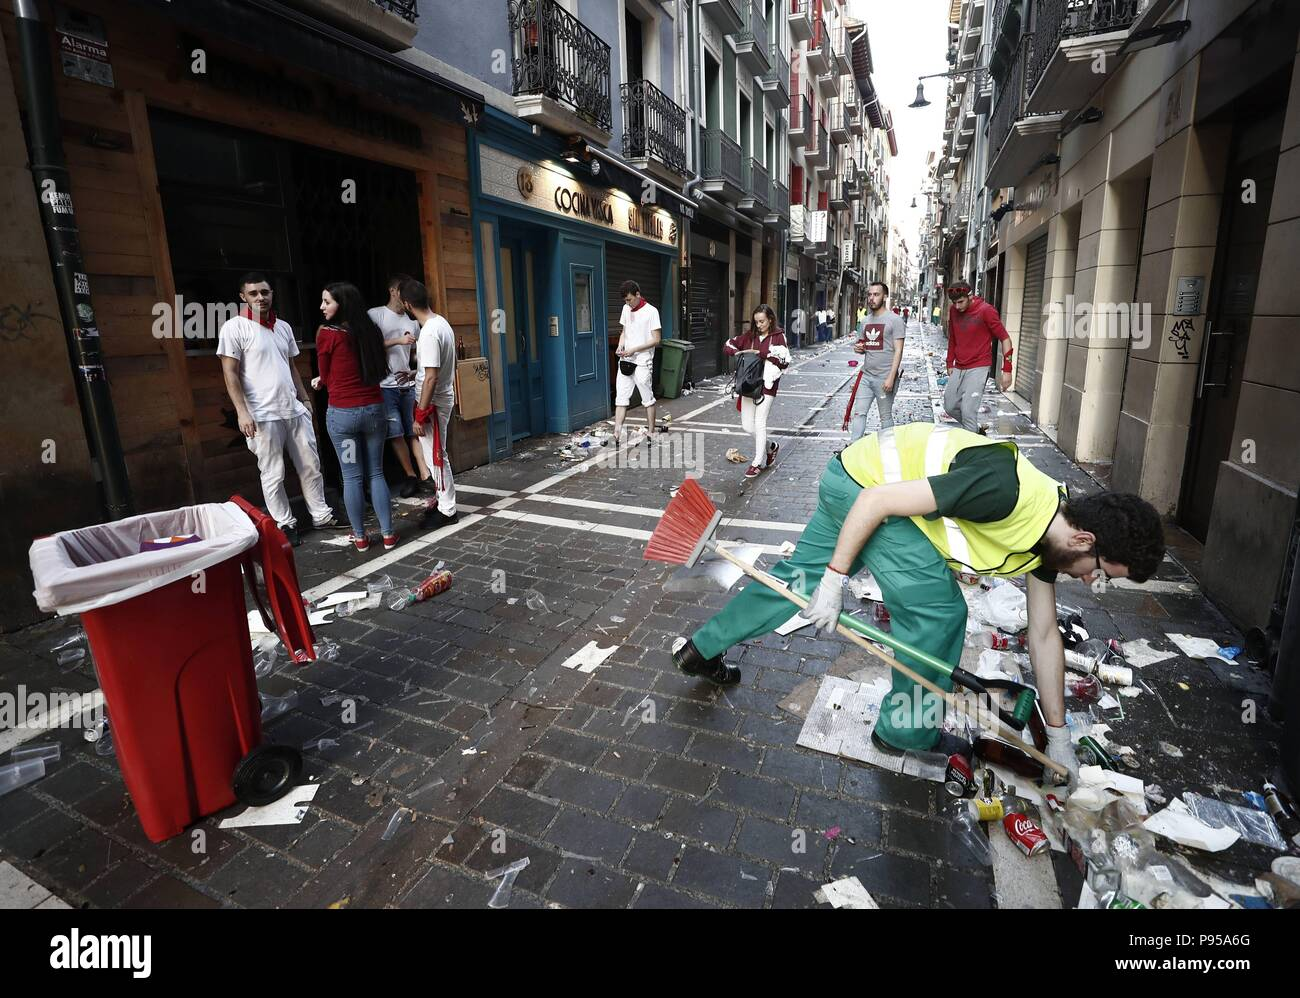 Pamplona, Spain. 15th July, 2018. A local worker cleans a street in the morning after the end of Sanfermines, in Pamplona, Spain, early 15 July 2018. At midnight thousands of people sang the traditional 'Pobre de mi', to express their regret for the end of the festivities. Credit: Jesus Diges/EFE/Alamy Live News Credit: EFE News Agency/Alamy Live News - Stock Image